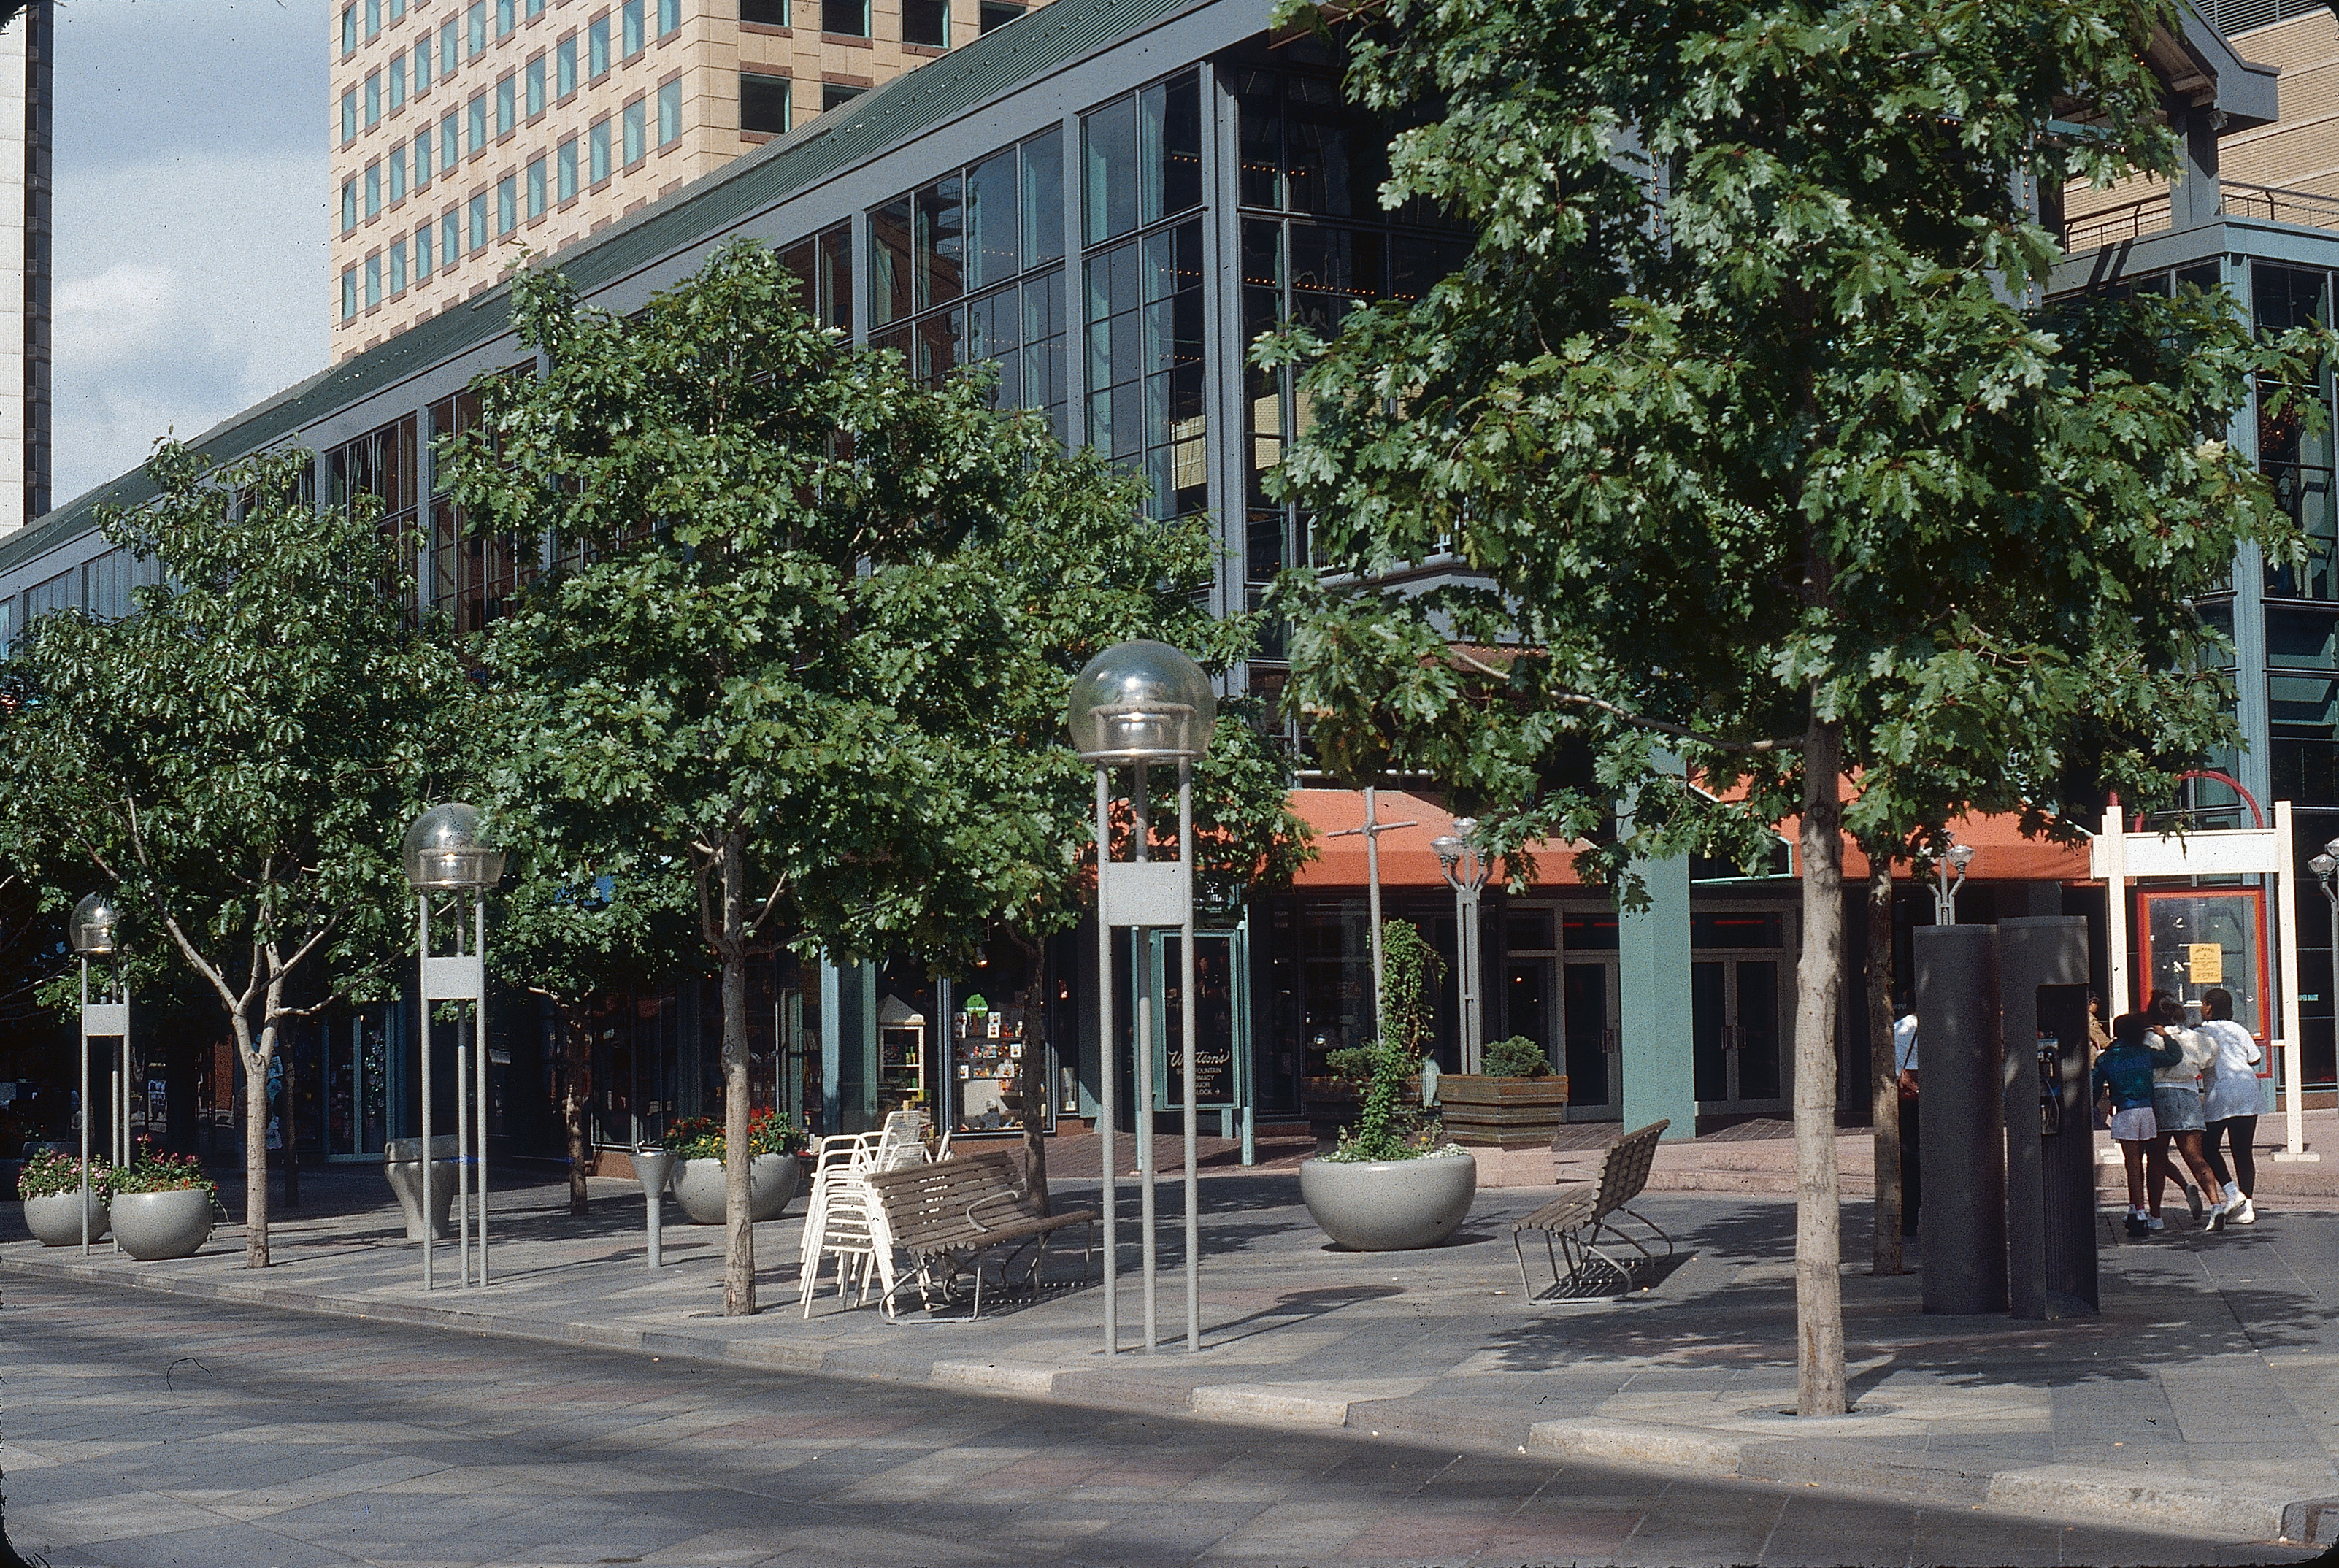 The 16th Street Mall trees in 1988. Photo credit: Tom Perry